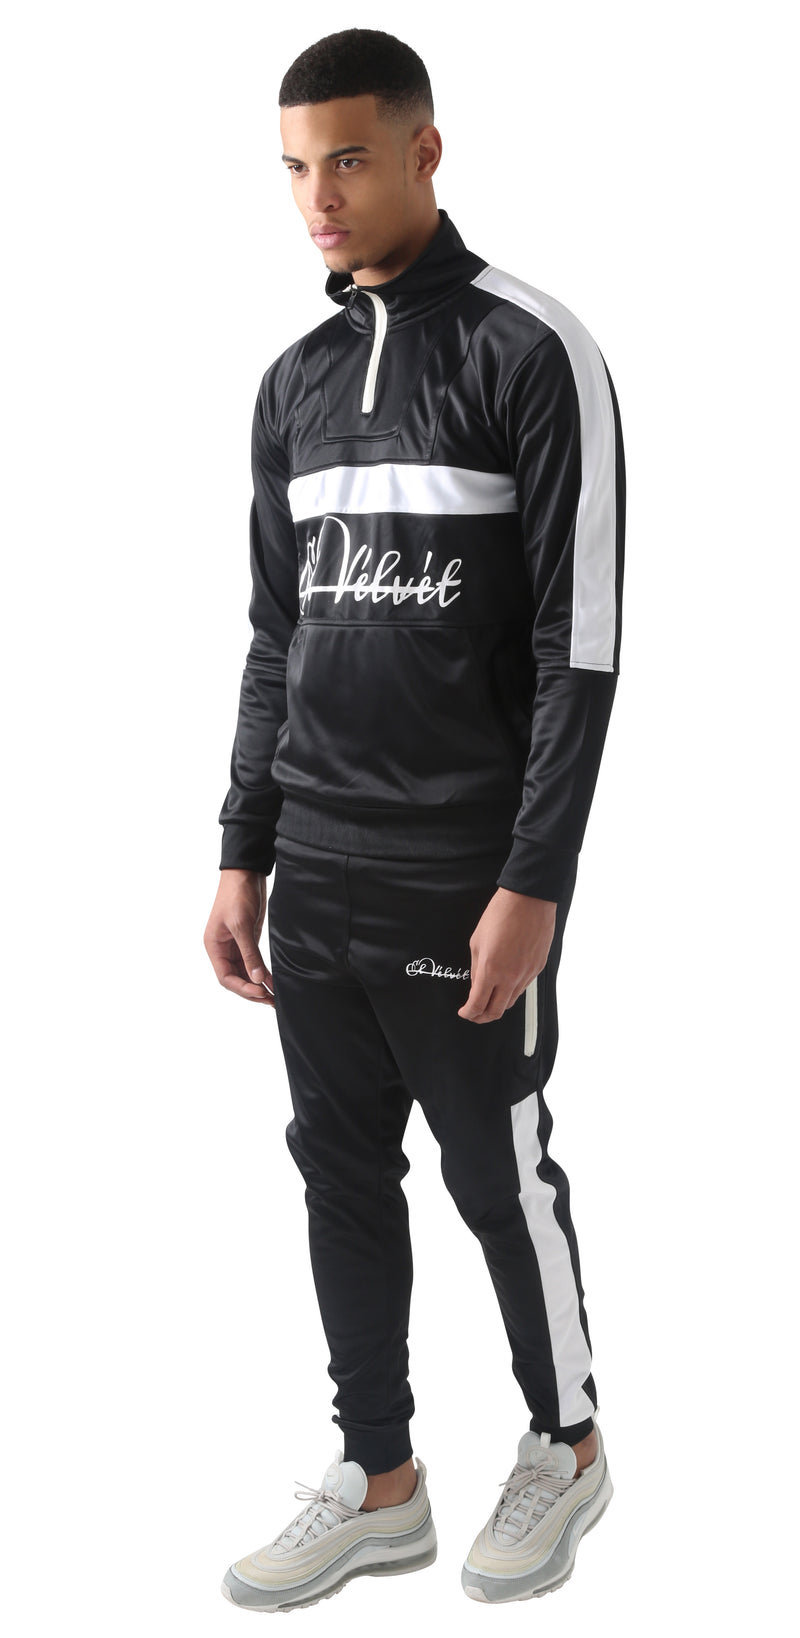 White Panelled black Trechic Tracksuit